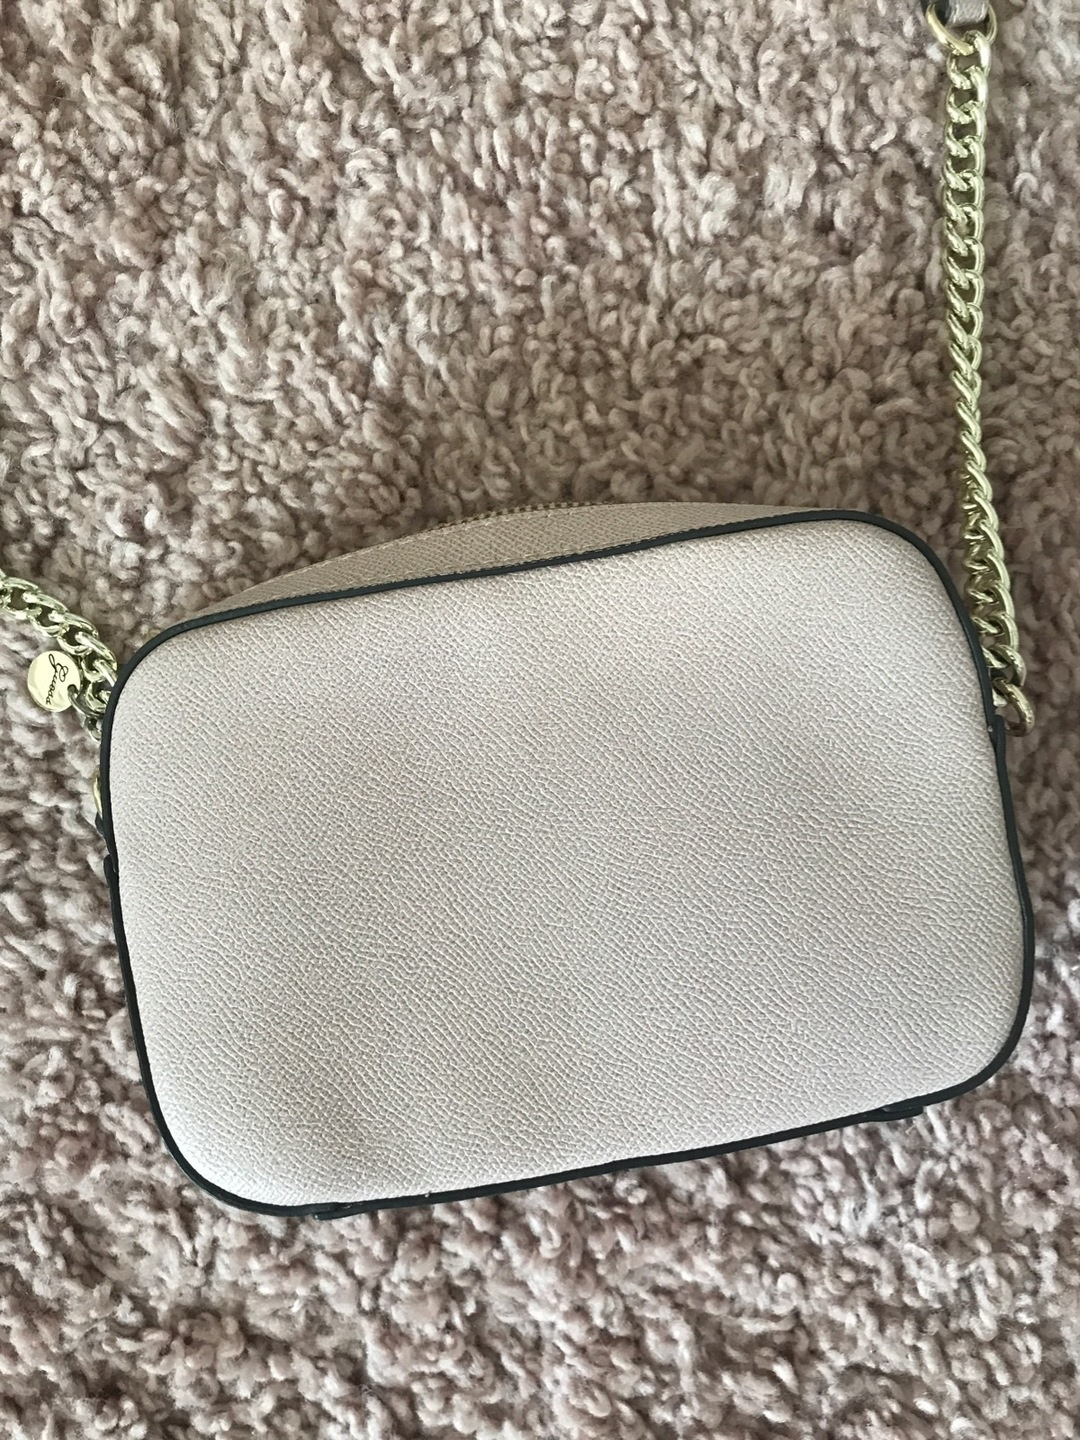 Women's bags & purses - GUESS photo 2